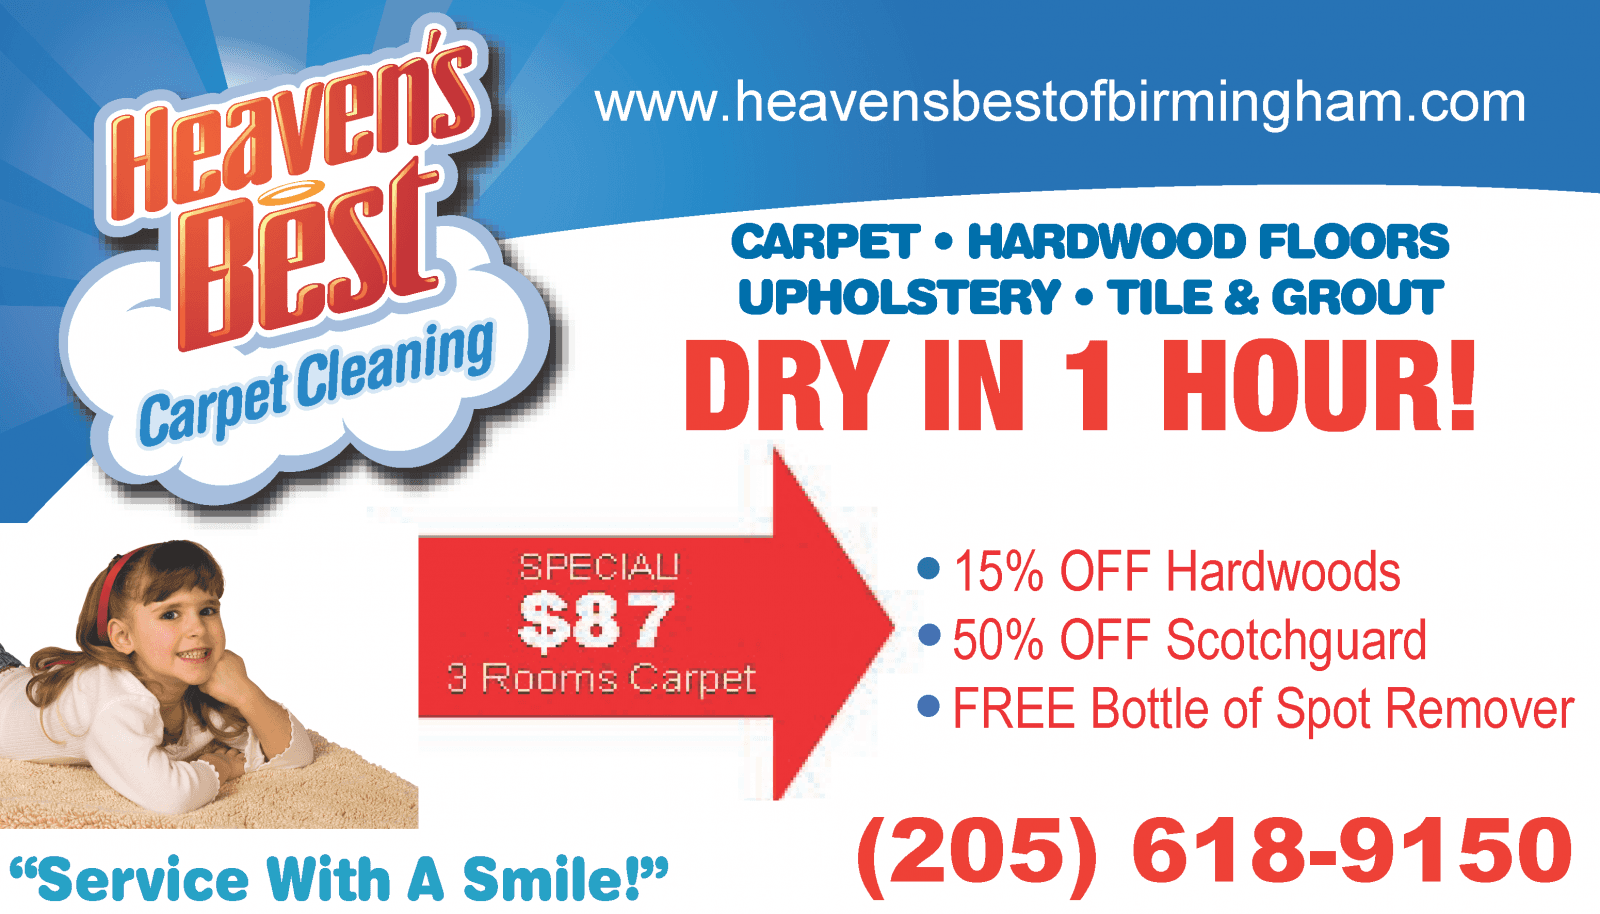 Heaven's Best Carpet Cleaning Special Deals